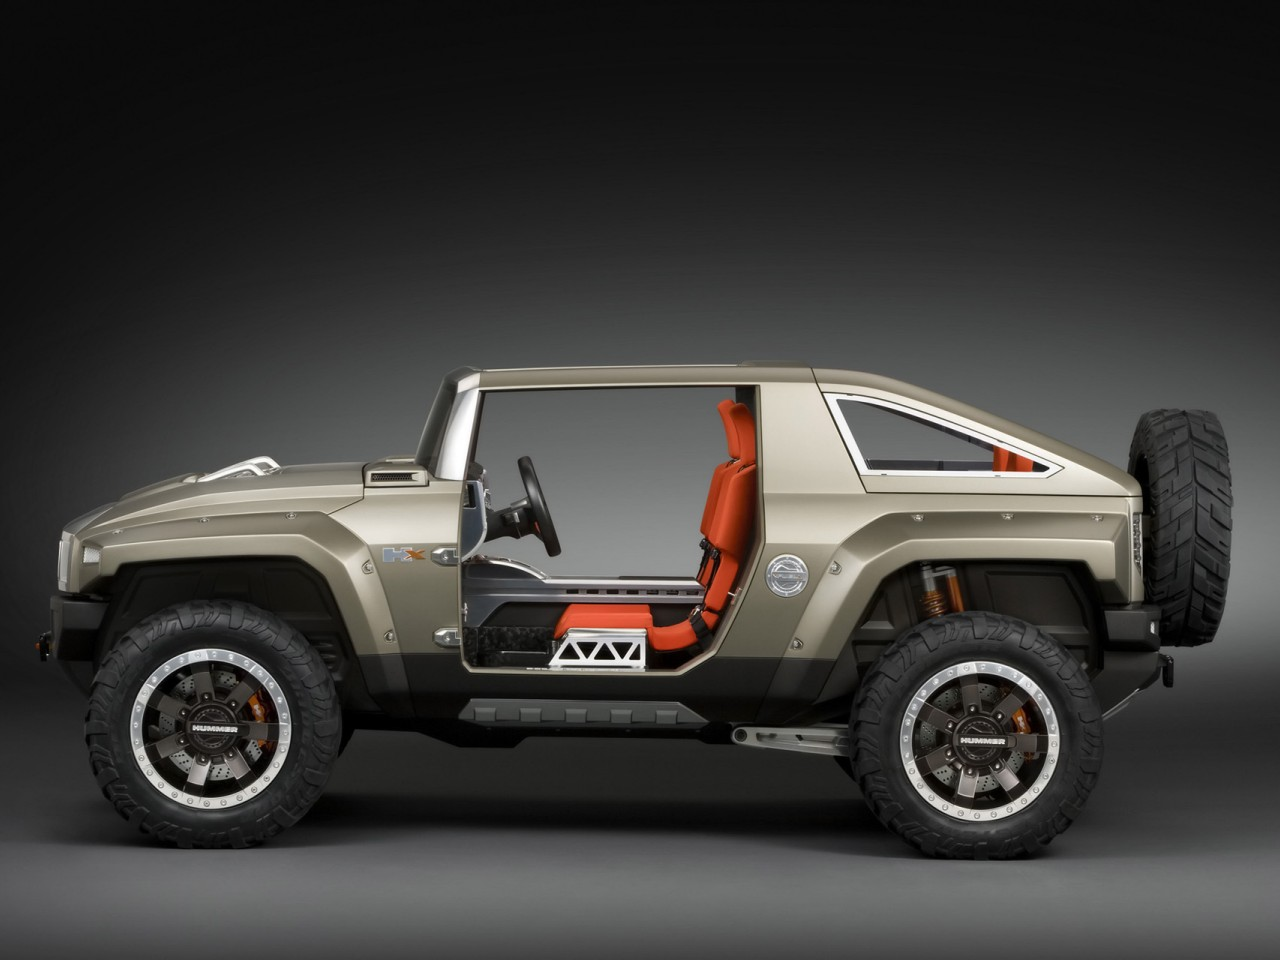 Upcoming Hummer Pickup Truck Will Be Sold At GMC Dealers